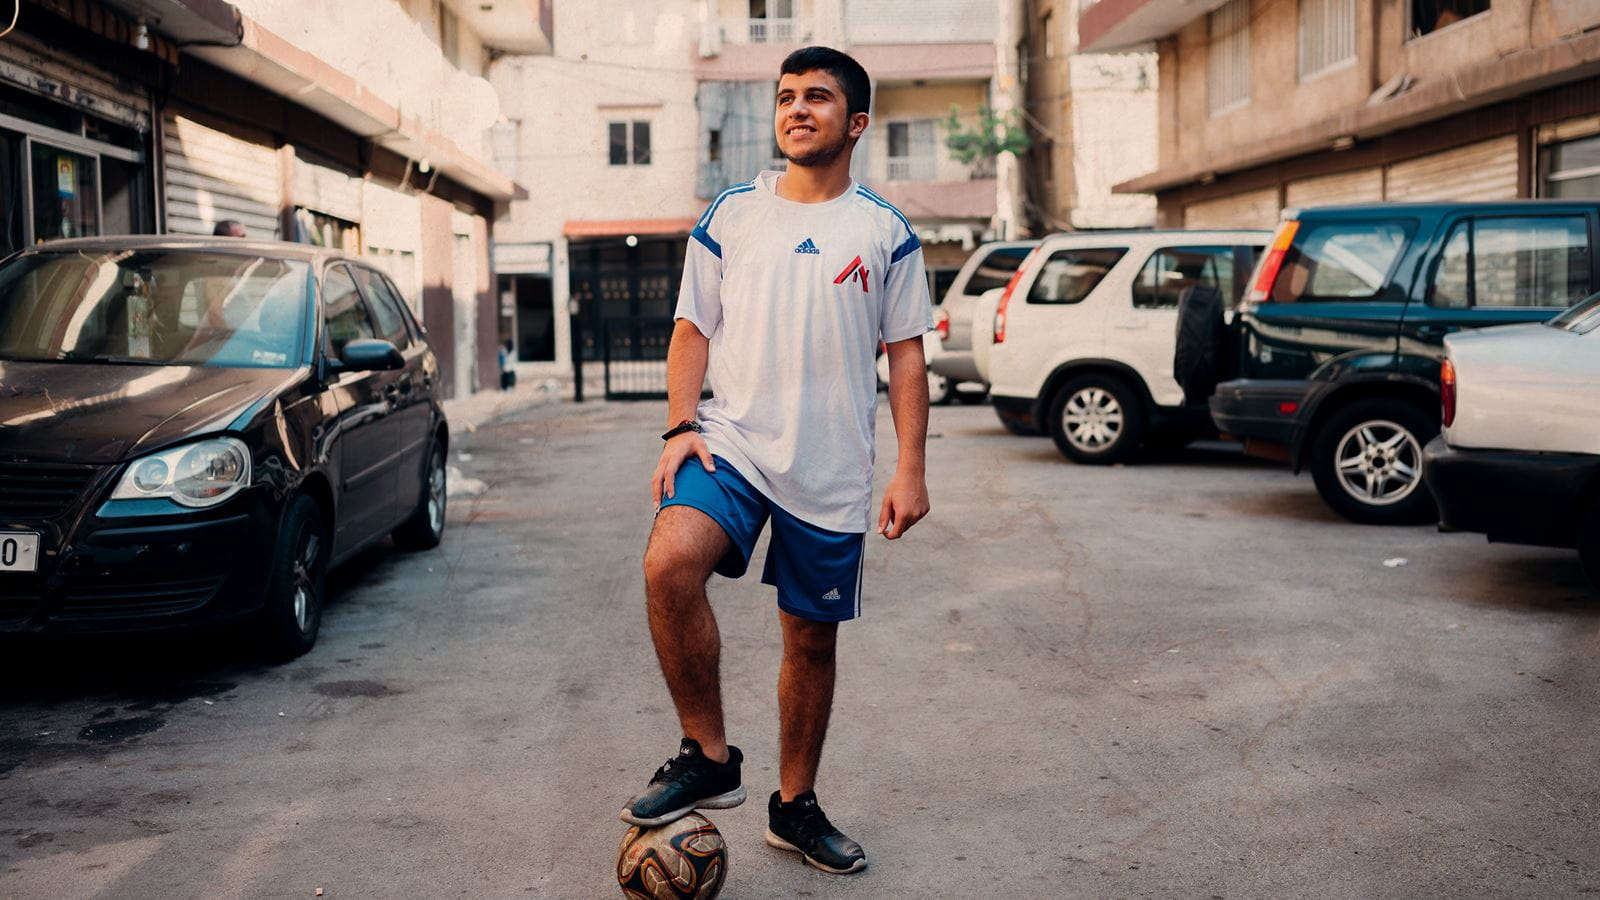 Saif stands with a football in a street in Beirut, Lebanon. Credit: Ruth Towell/Tearfund